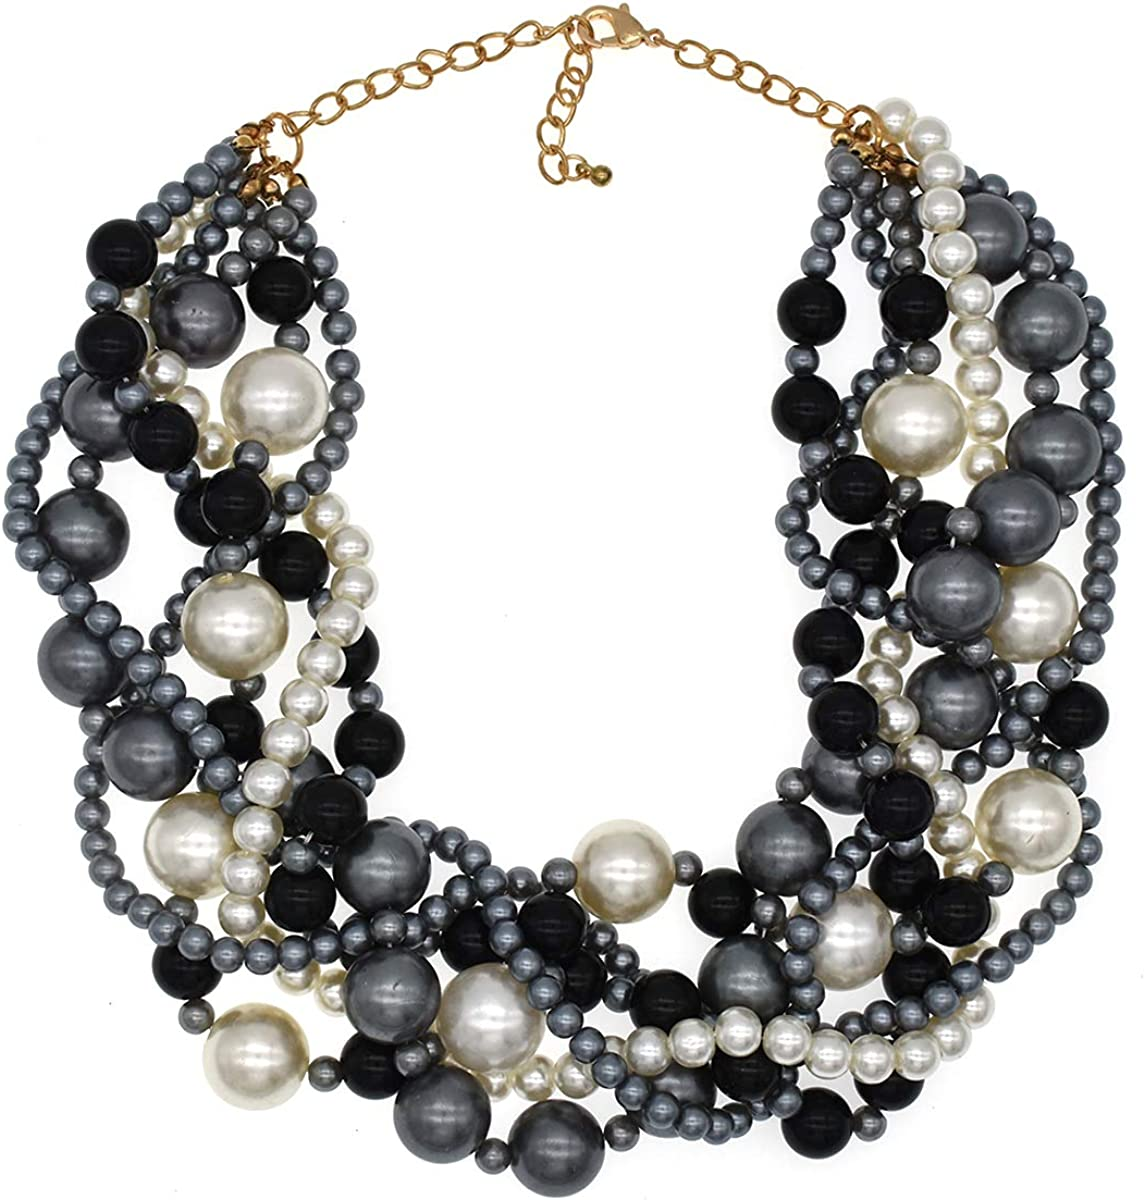 Multiple Layered Chunky Necklace Black Beadwork Jewelry Gift Two Row Double Strand Beaded Necklace Black and White Gold Statement Necklace